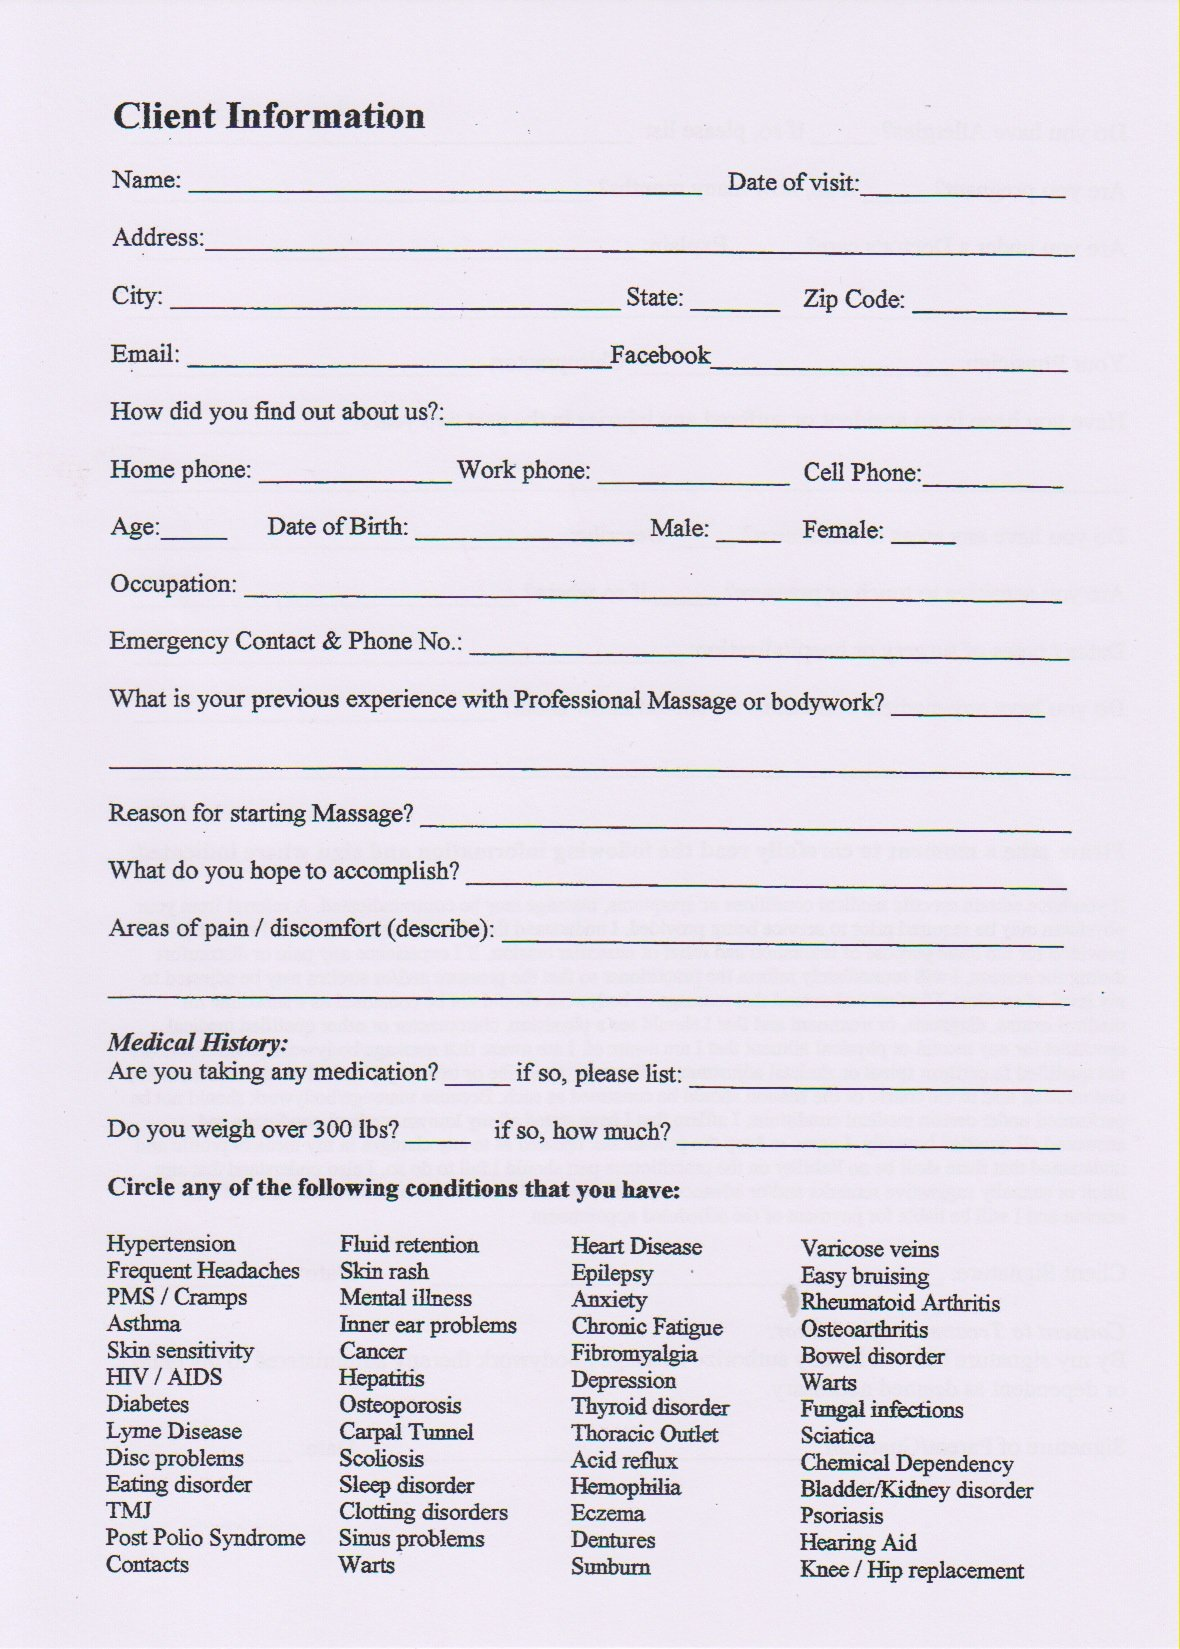 Client Intake form Olalaopx